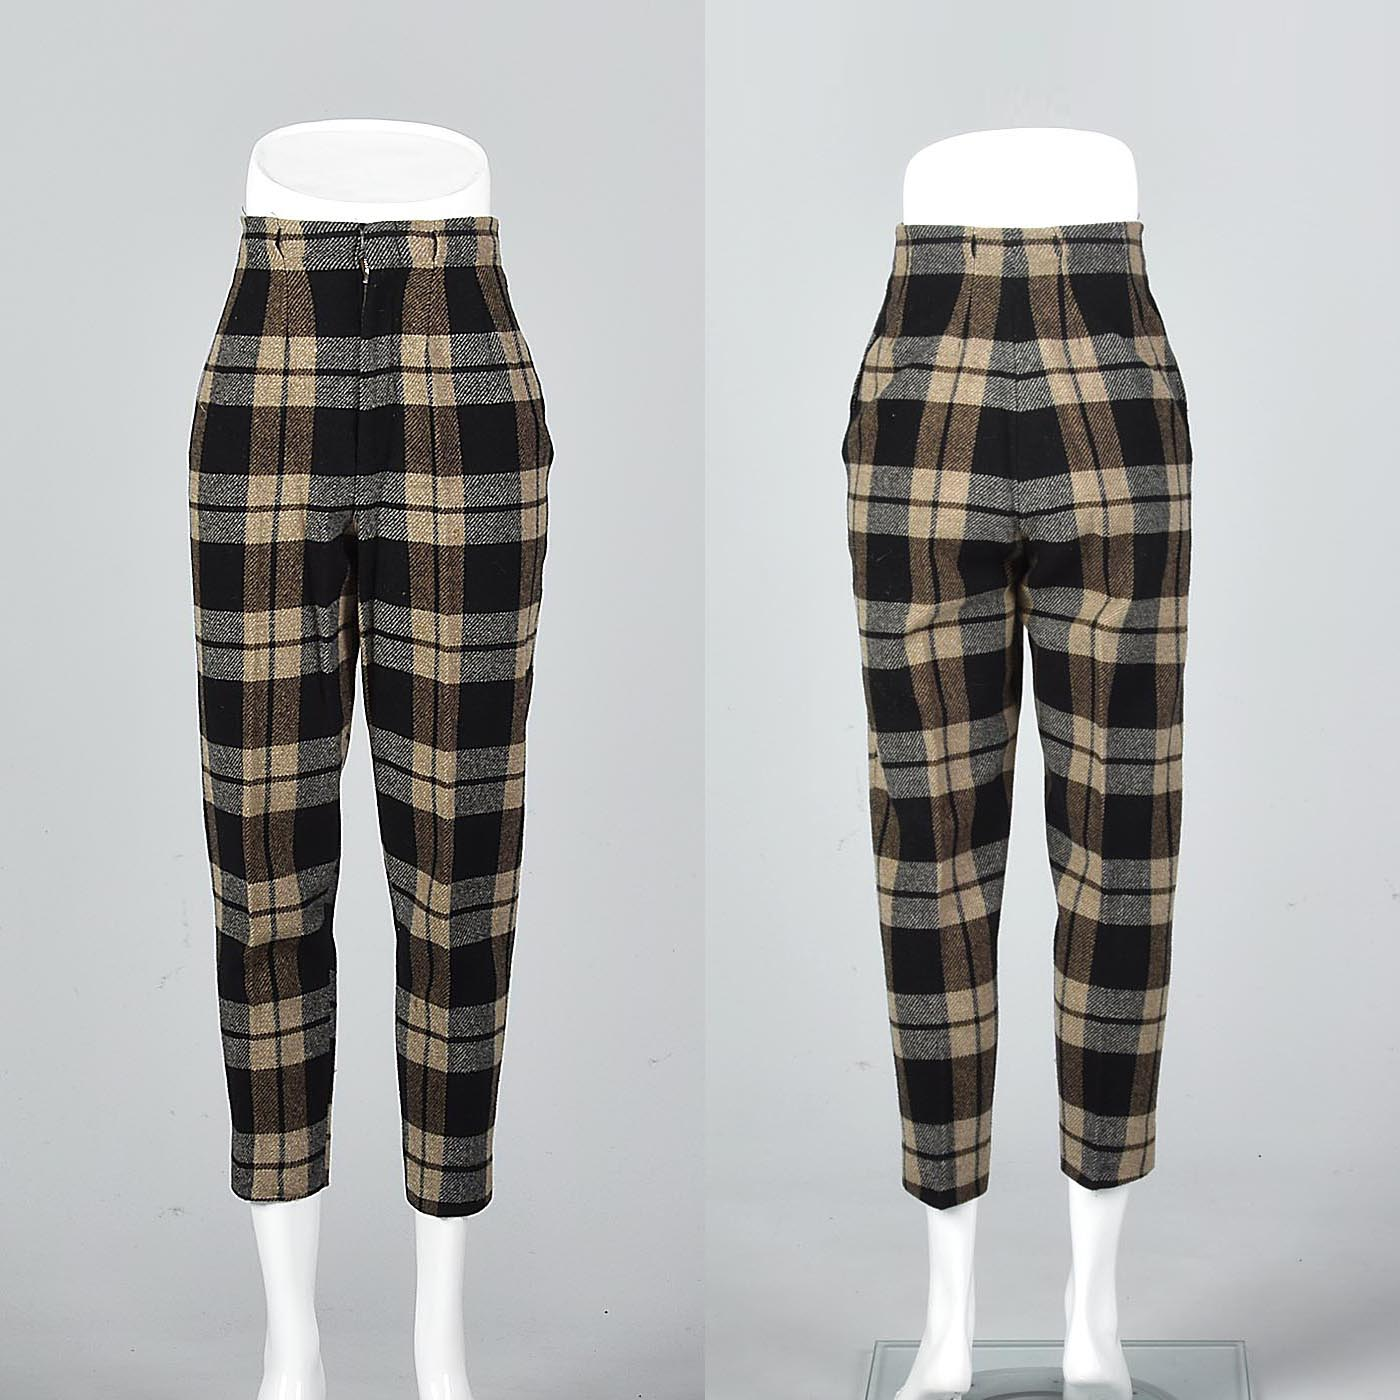 1960s Wool Cigarette Pants in Black and Brown Plaid